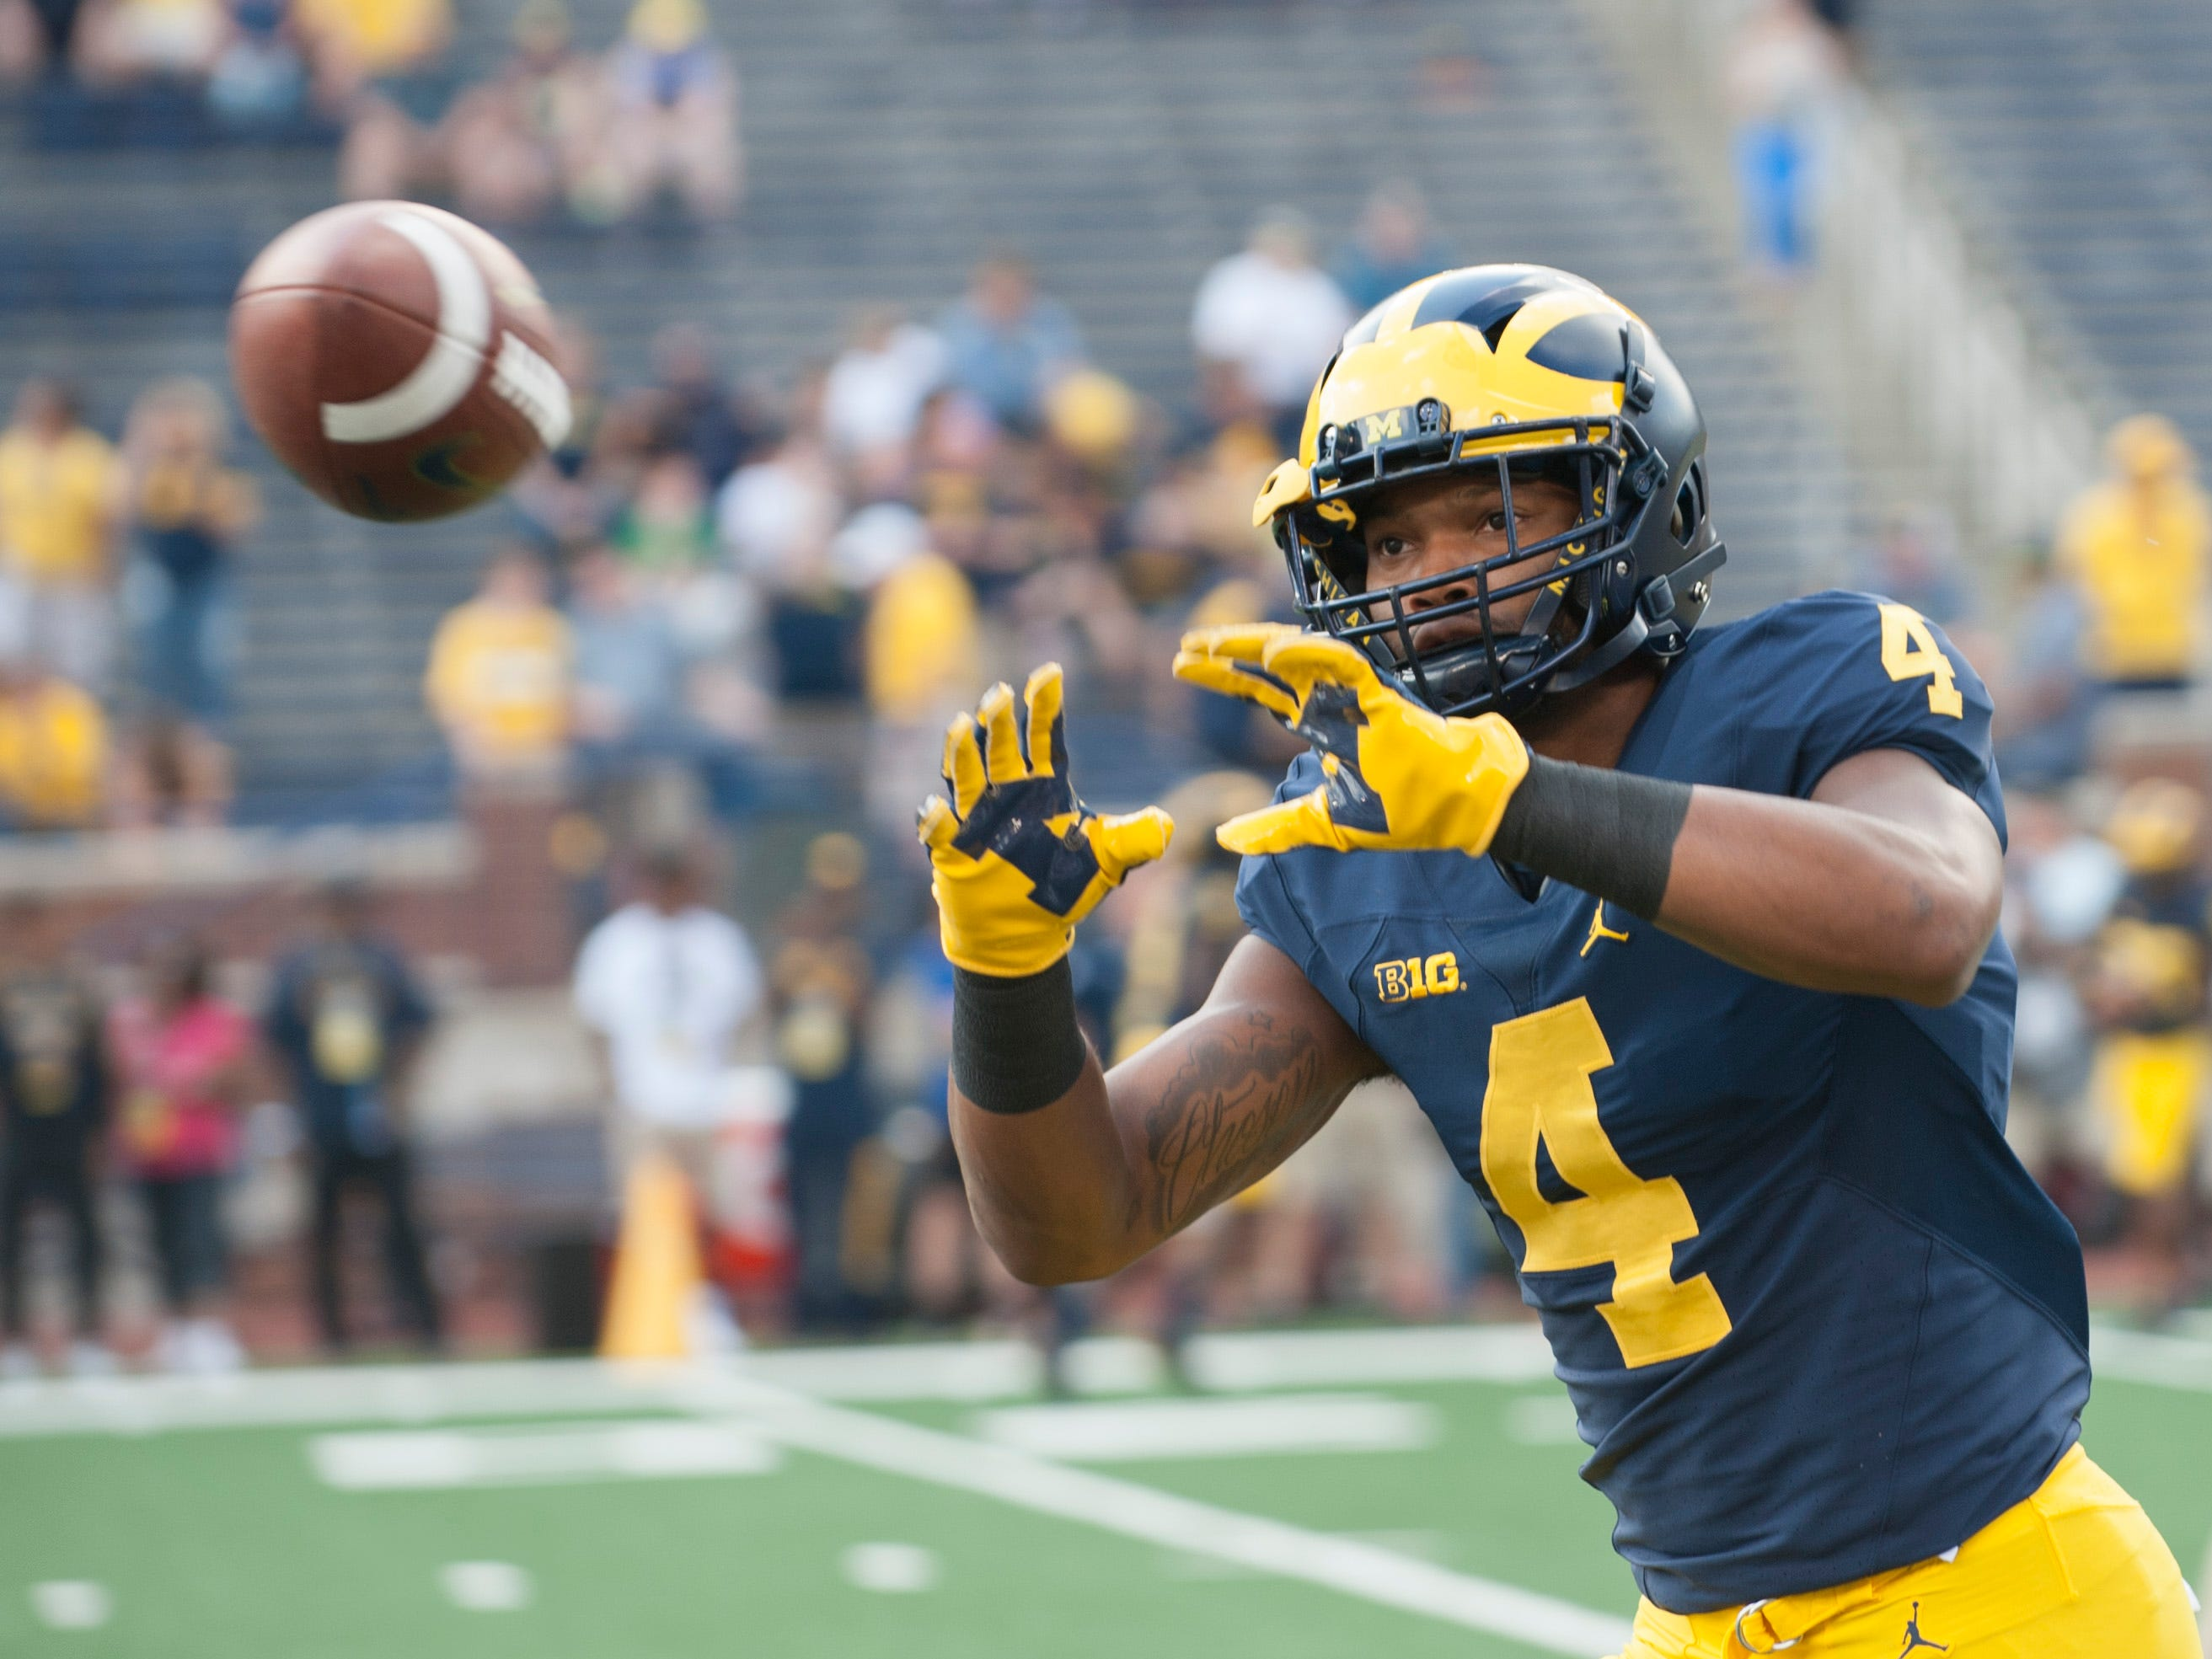 Michigan wide receiver Nico Collins catches a pass during pre-game warmups.